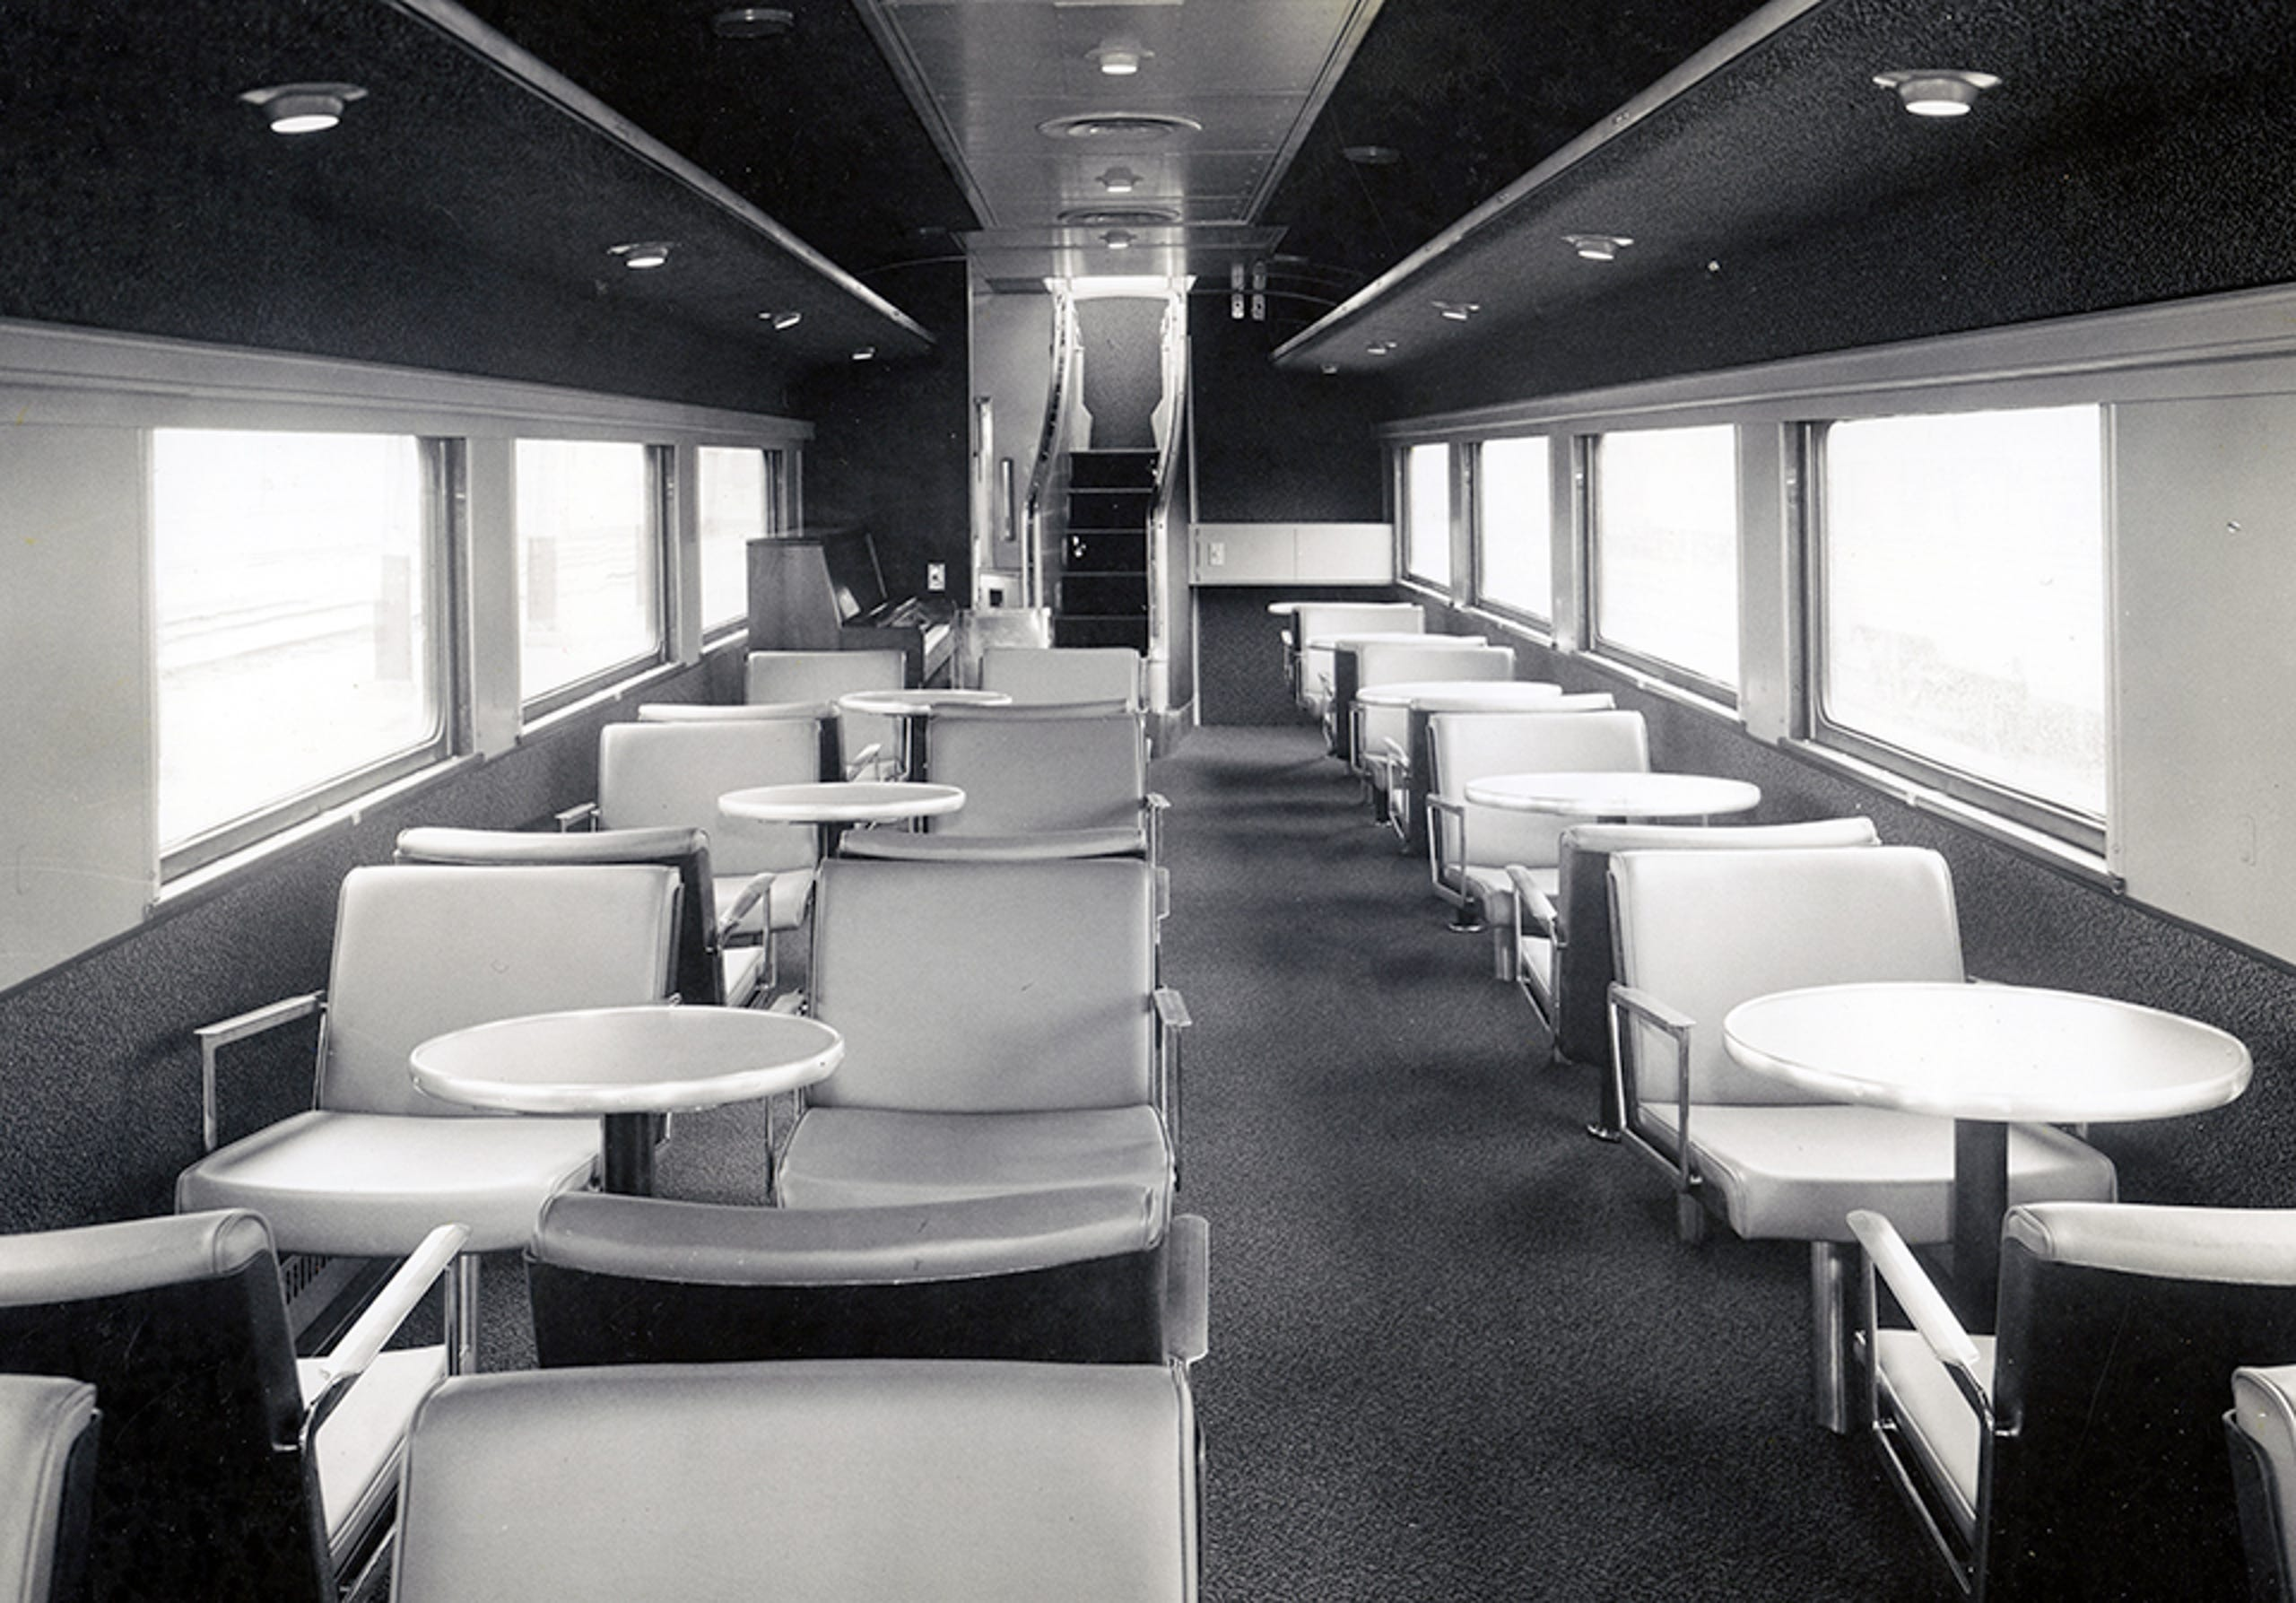 Amtrak passenger cars from the 1970s to today